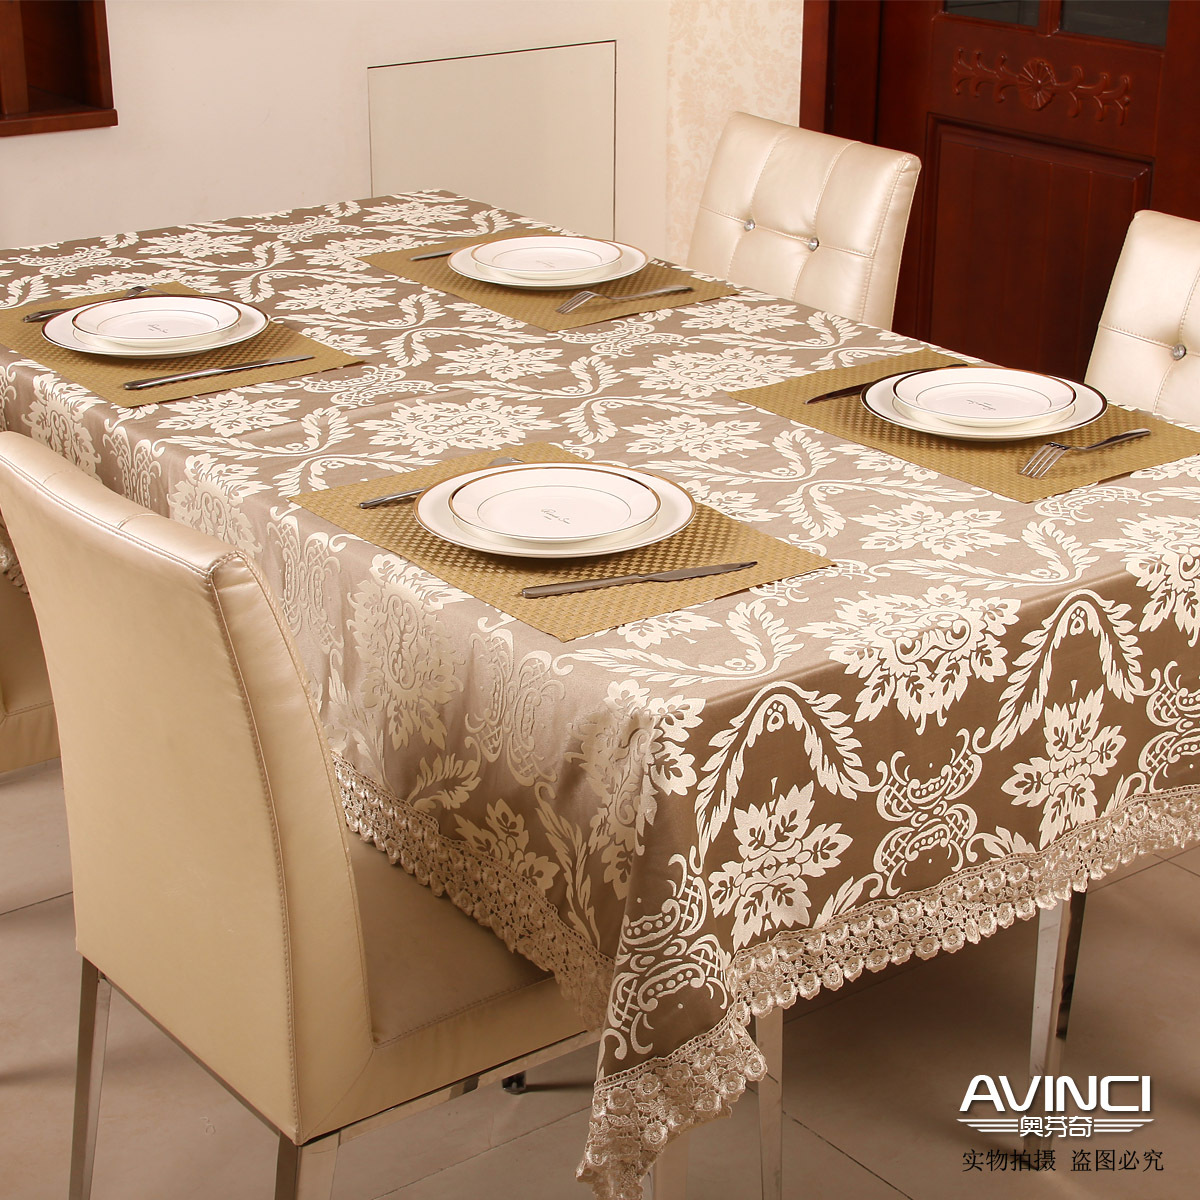 Elegant Dining Room Table Cloths Collective Dwnm, Dining Tables